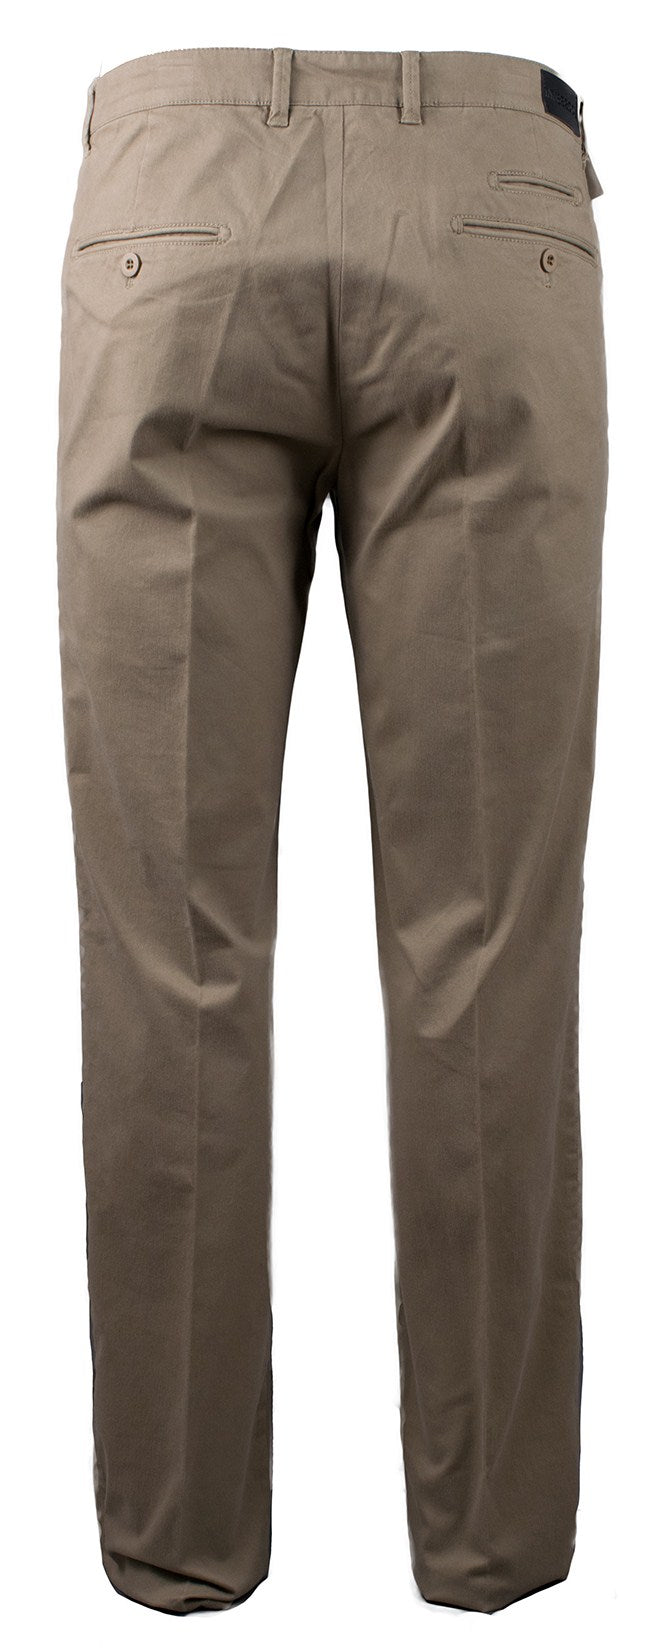 STRAUSS TROUSERS - Taupe